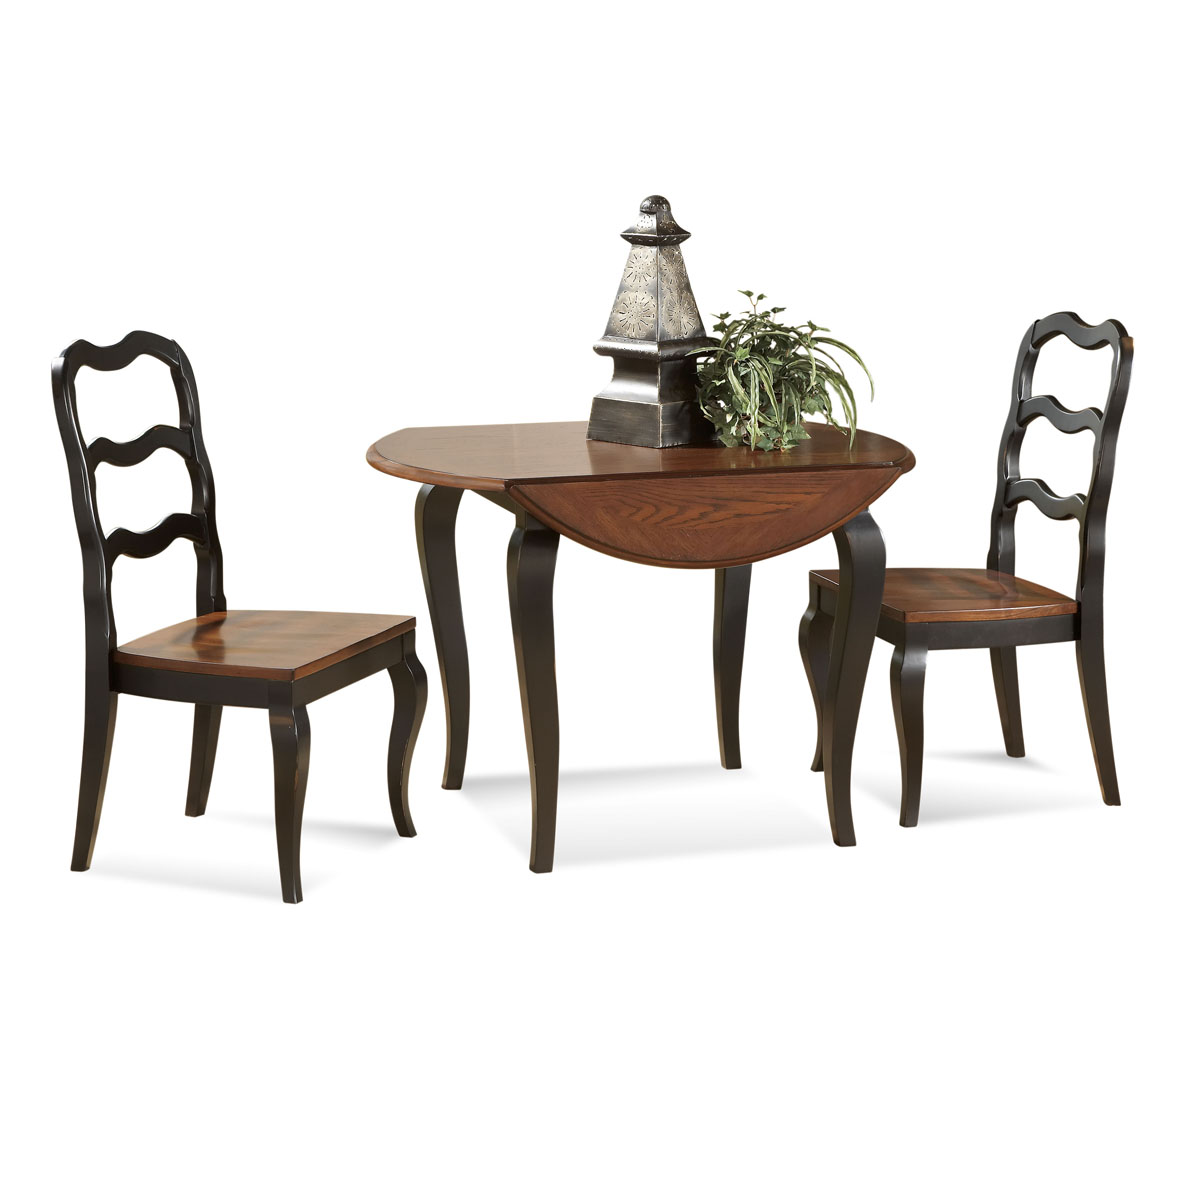 5 styles of drop leaf dining table for small spaces homesfeed. Black Bedroom Furniture Sets. Home Design Ideas